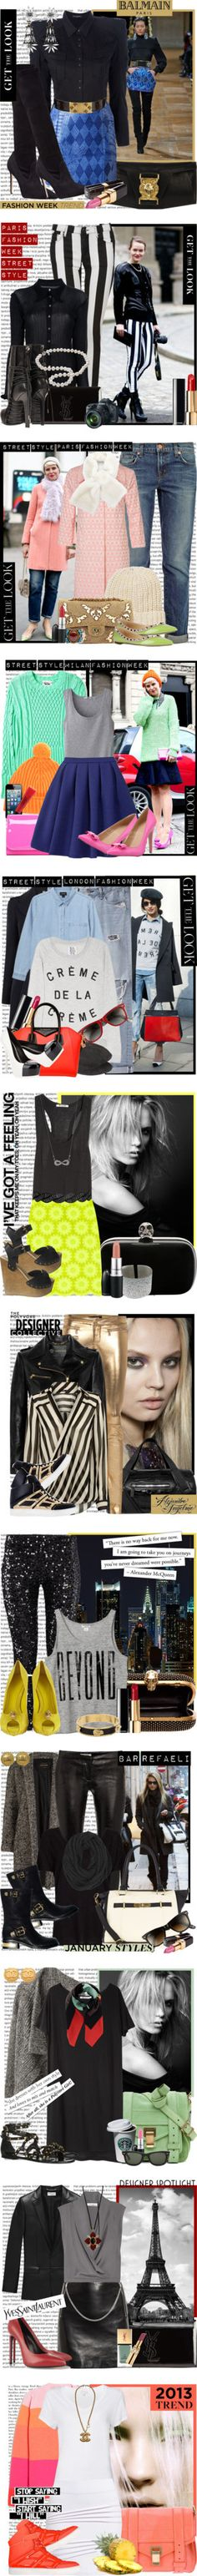 """""""MY TOP SETS - 2013"""" by karineminzonwilson ❤ liked on Polyvore"""